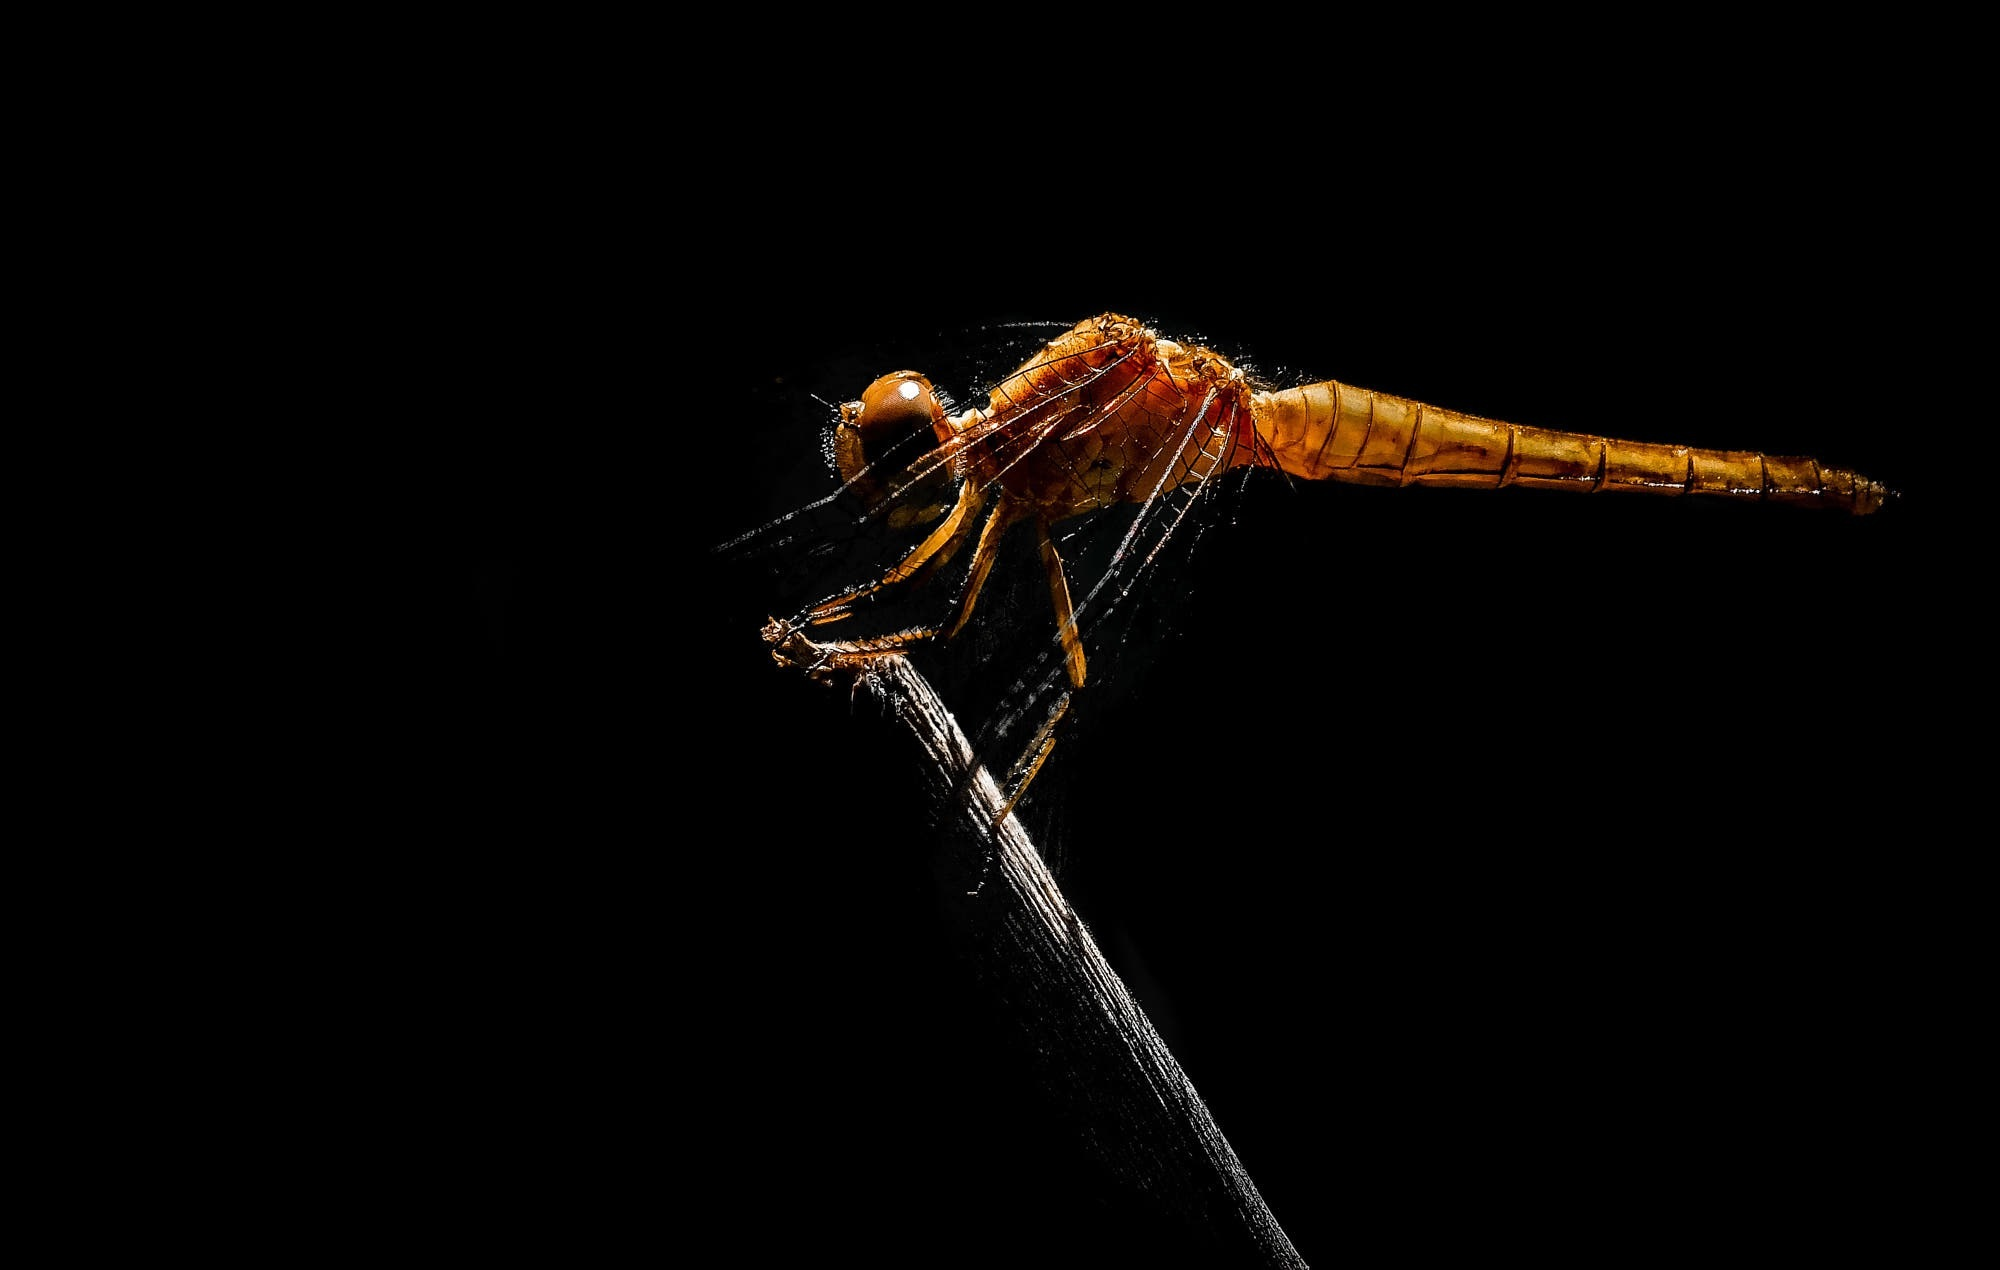 Dragon fly by sergiofernandes6767